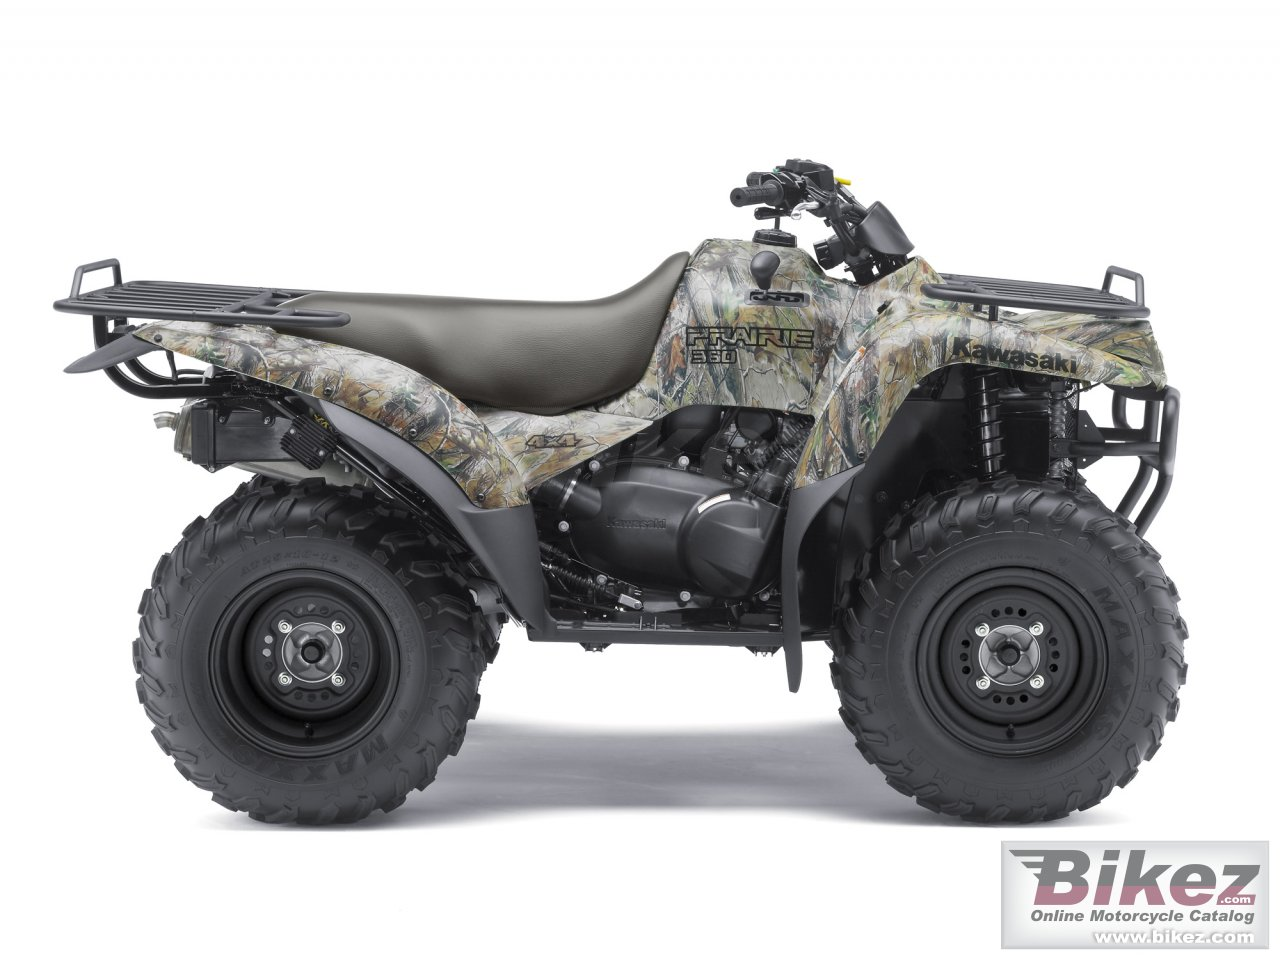 Big Kawasaki prairie 360 4x4 realtree apg hd picture and wallpaper from Bikez.com